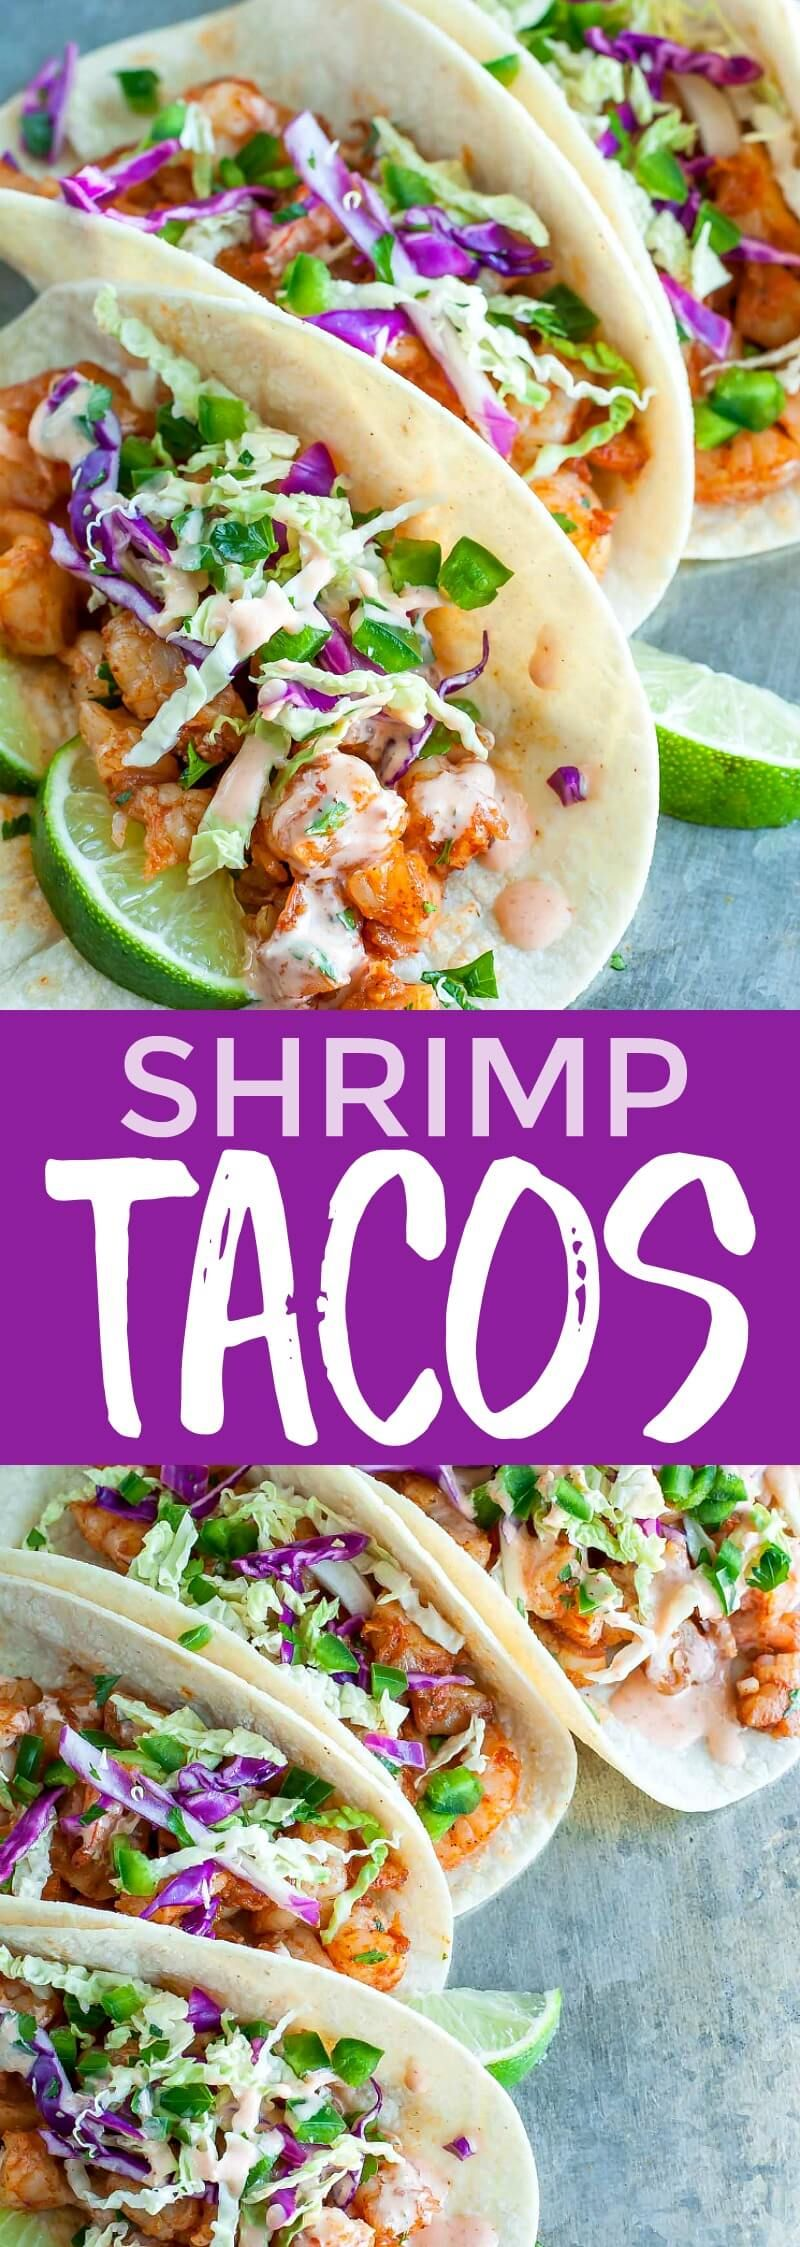 Spicy Sriracha Shrimp Tacos with Cilantro Lime Slaw #cilantrolimeslaw